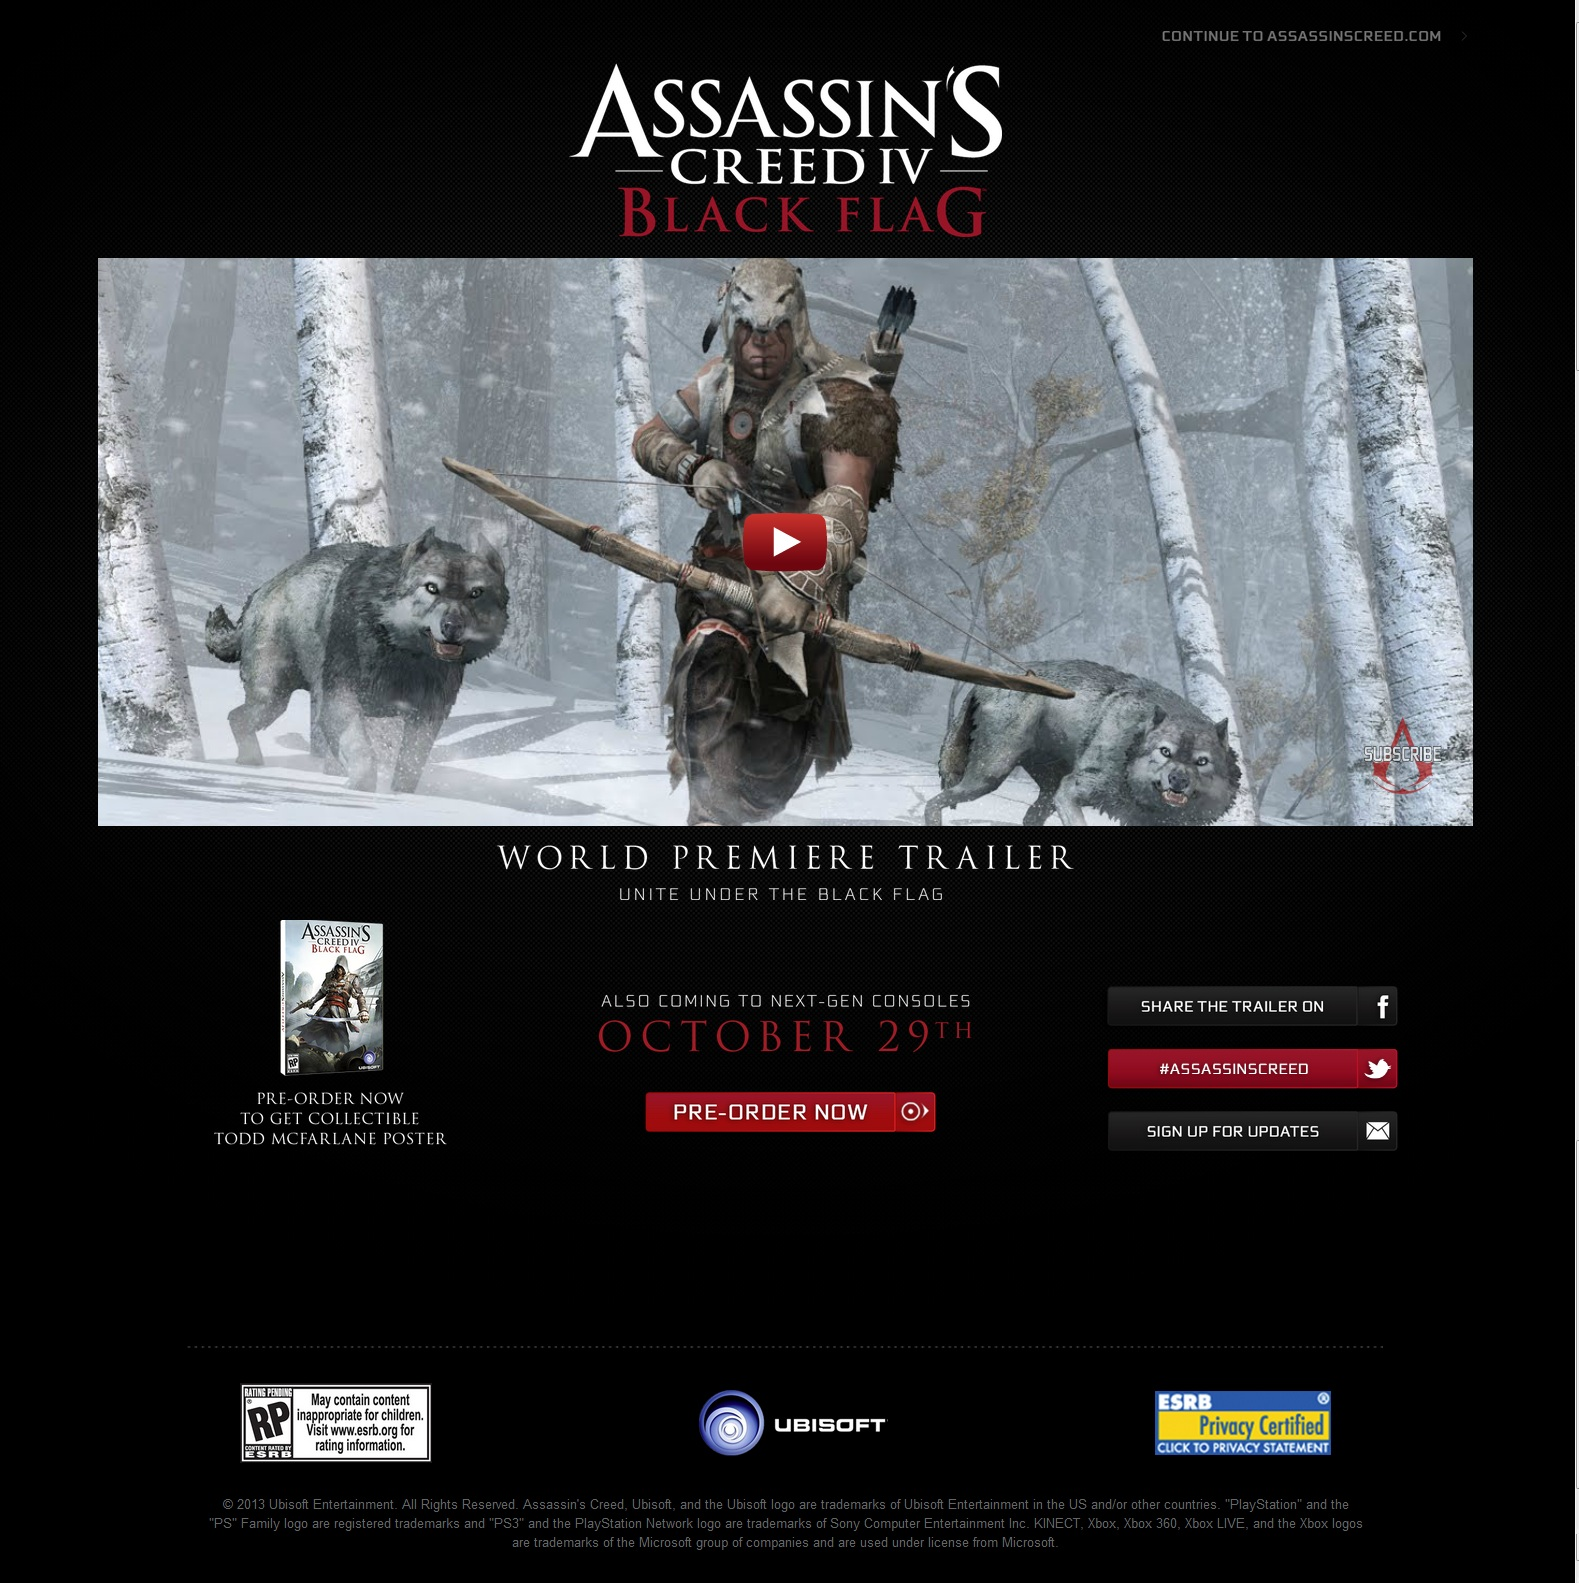 assassins_creed_iv_black_flag_page